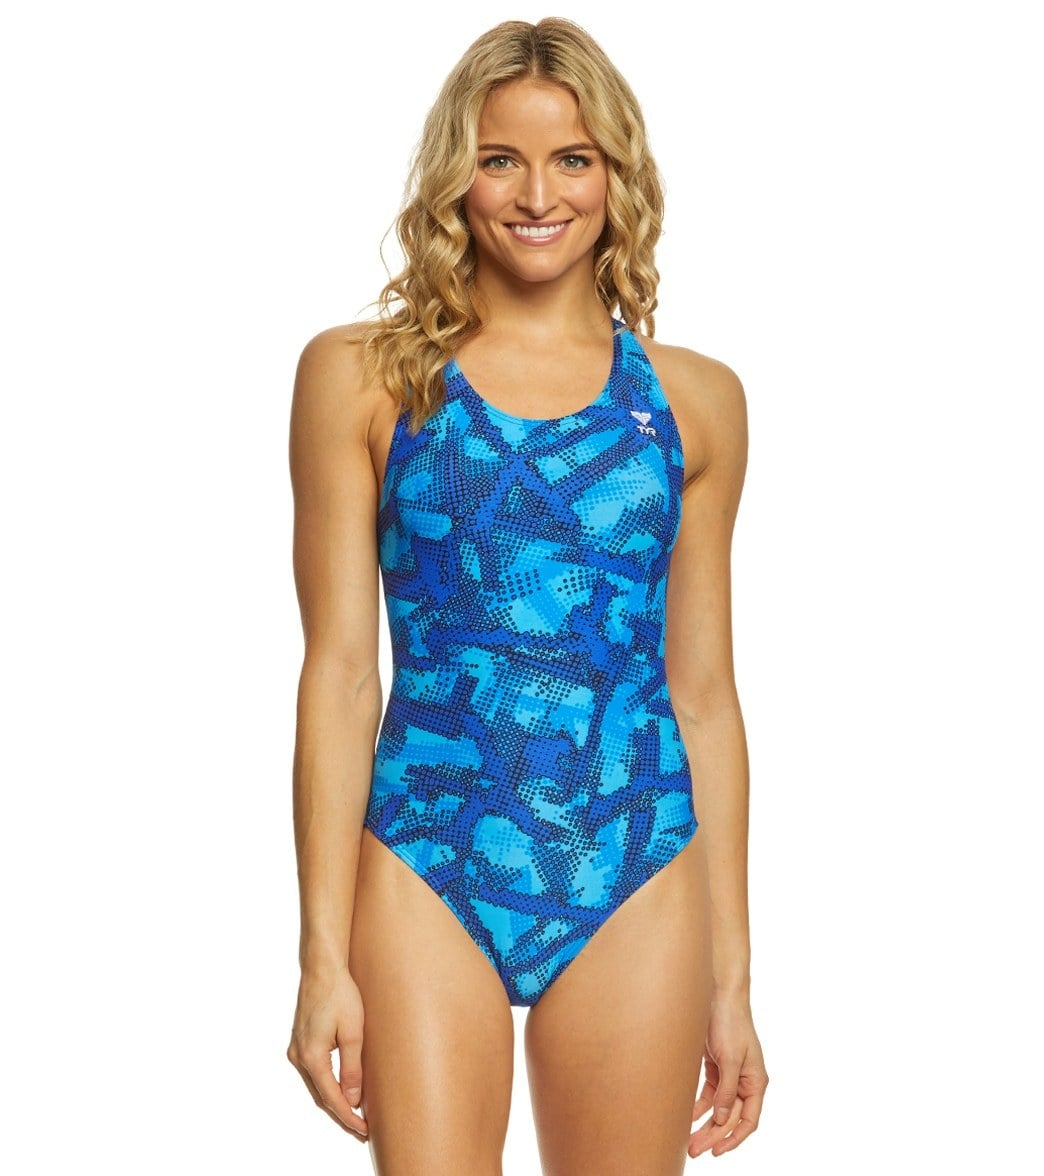 035985894f9 TYR Women's Vesuvius Maxfit One Piece Swimsuit at SwimOutlet.com - Free  Shipping